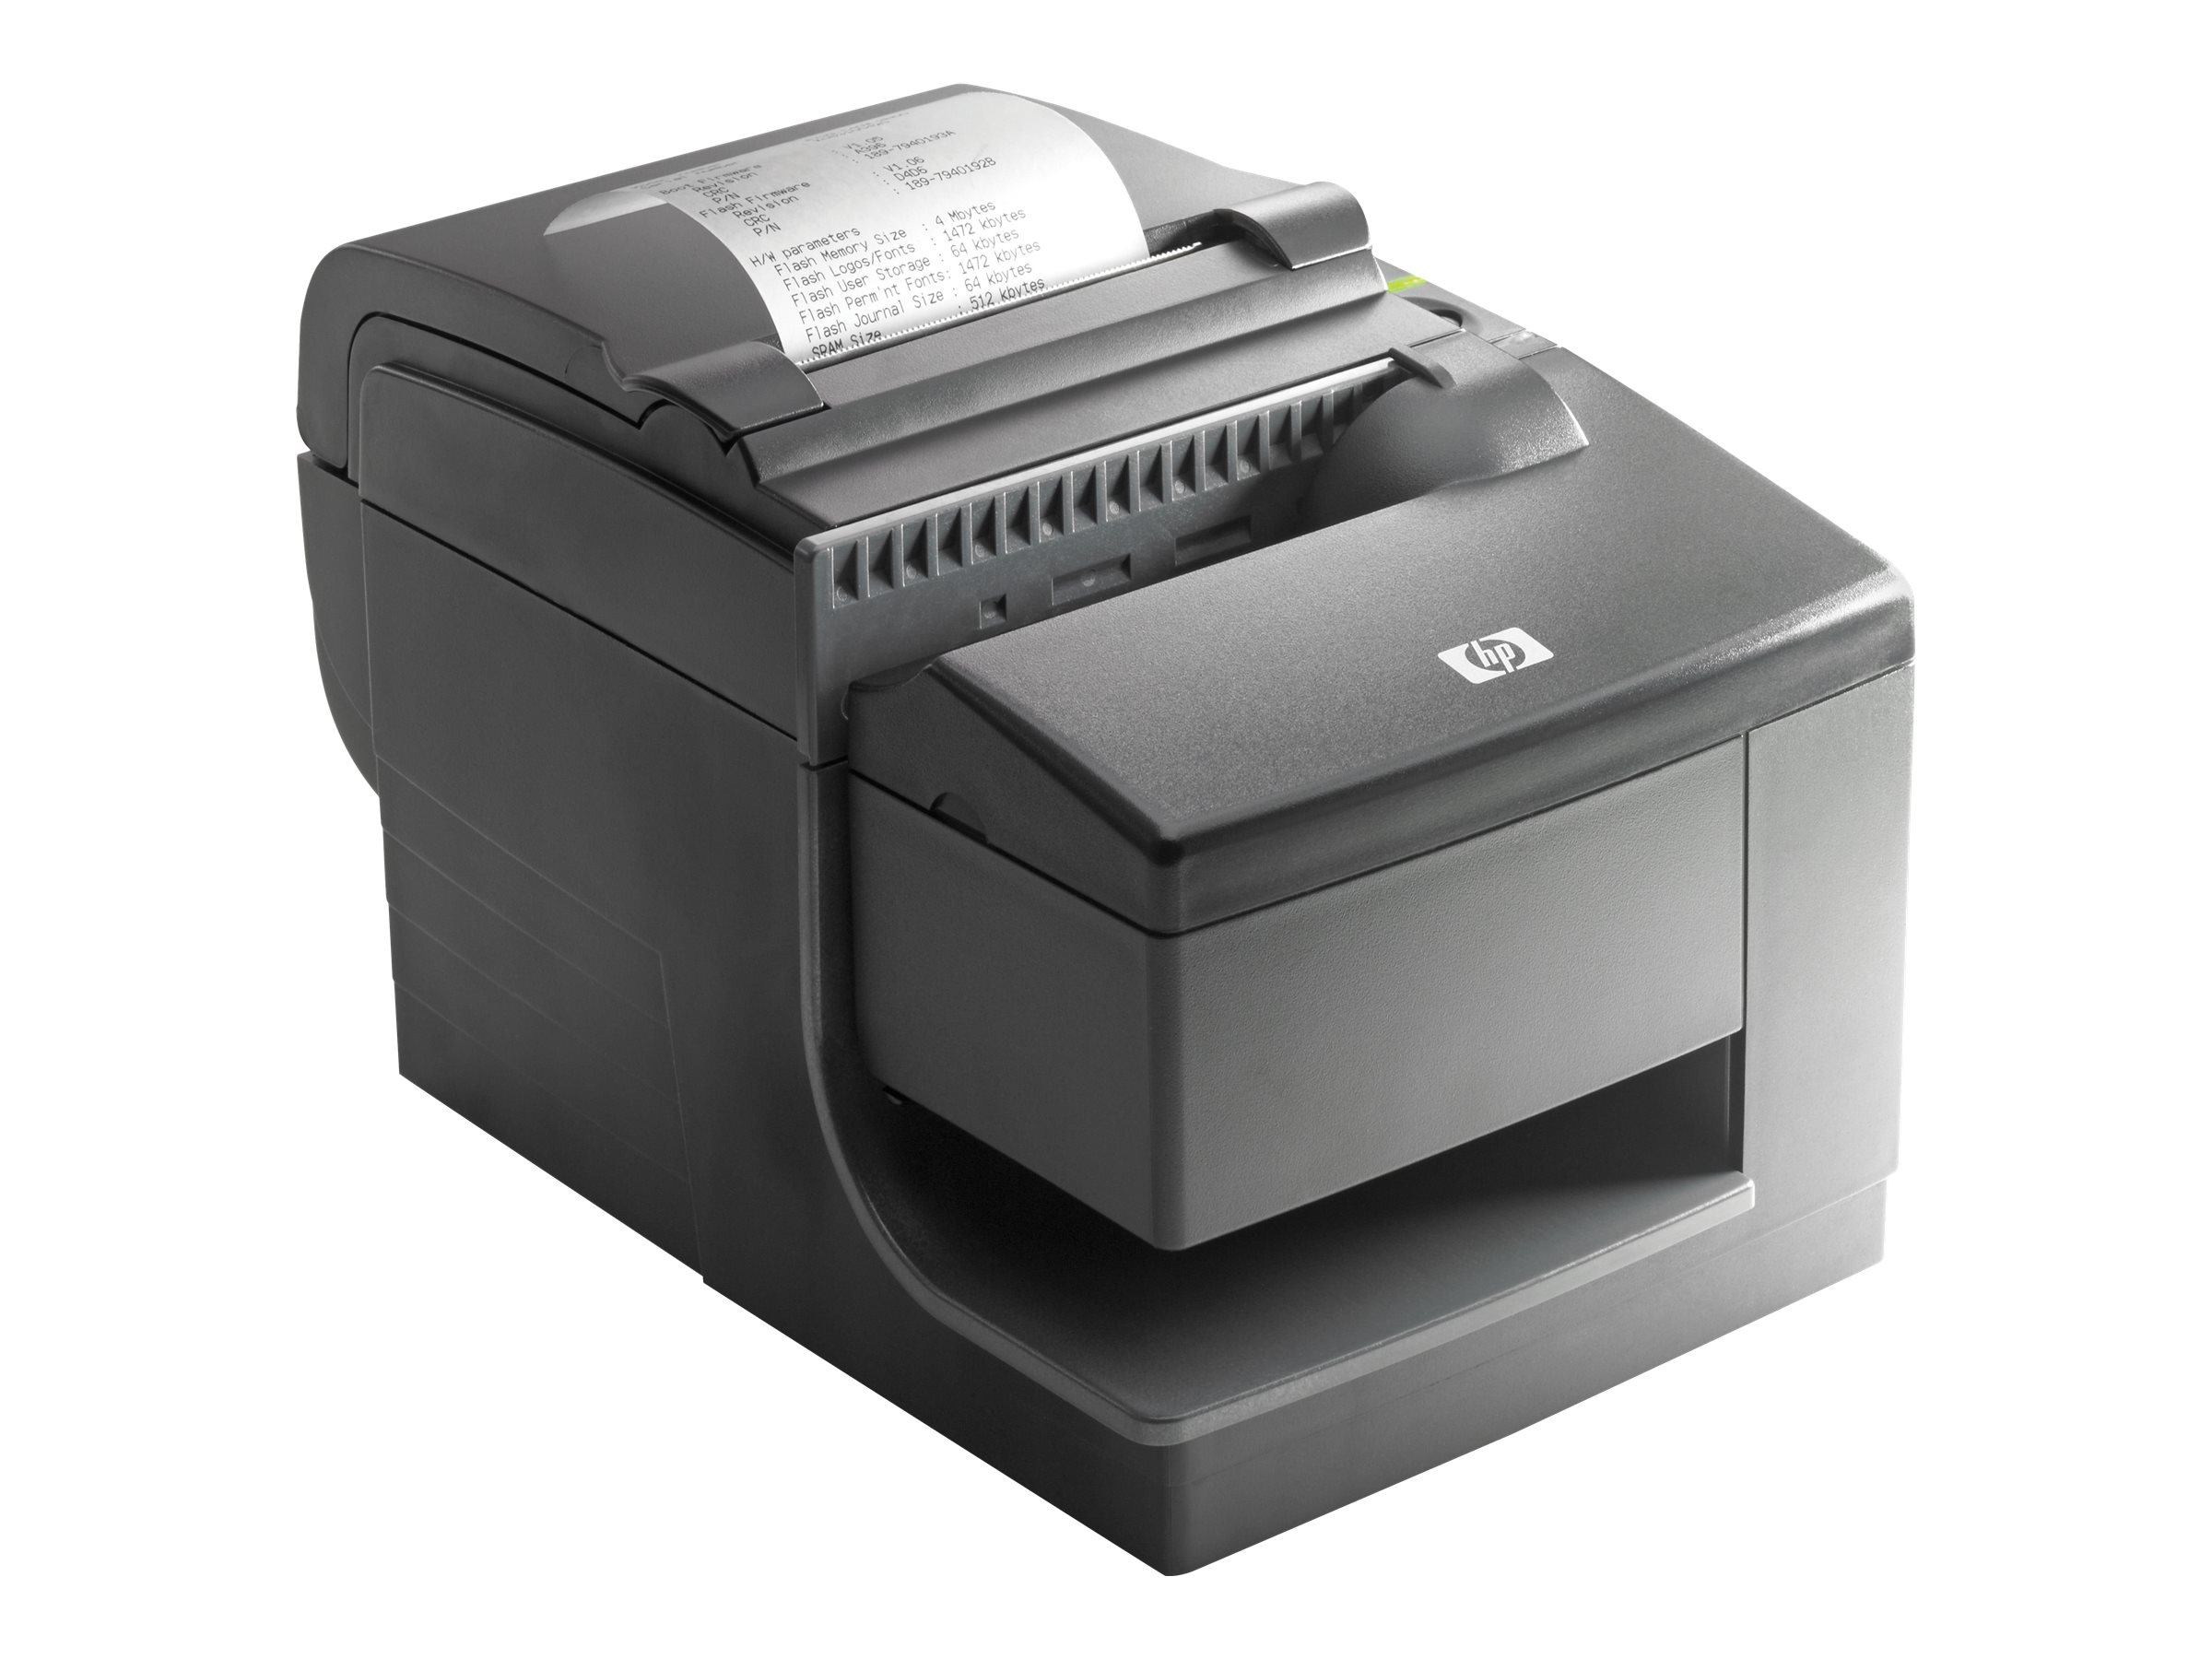 HP Hybrid Thermal Printer with MICR - receipt printer - two-color (monochrome) - direct thermal